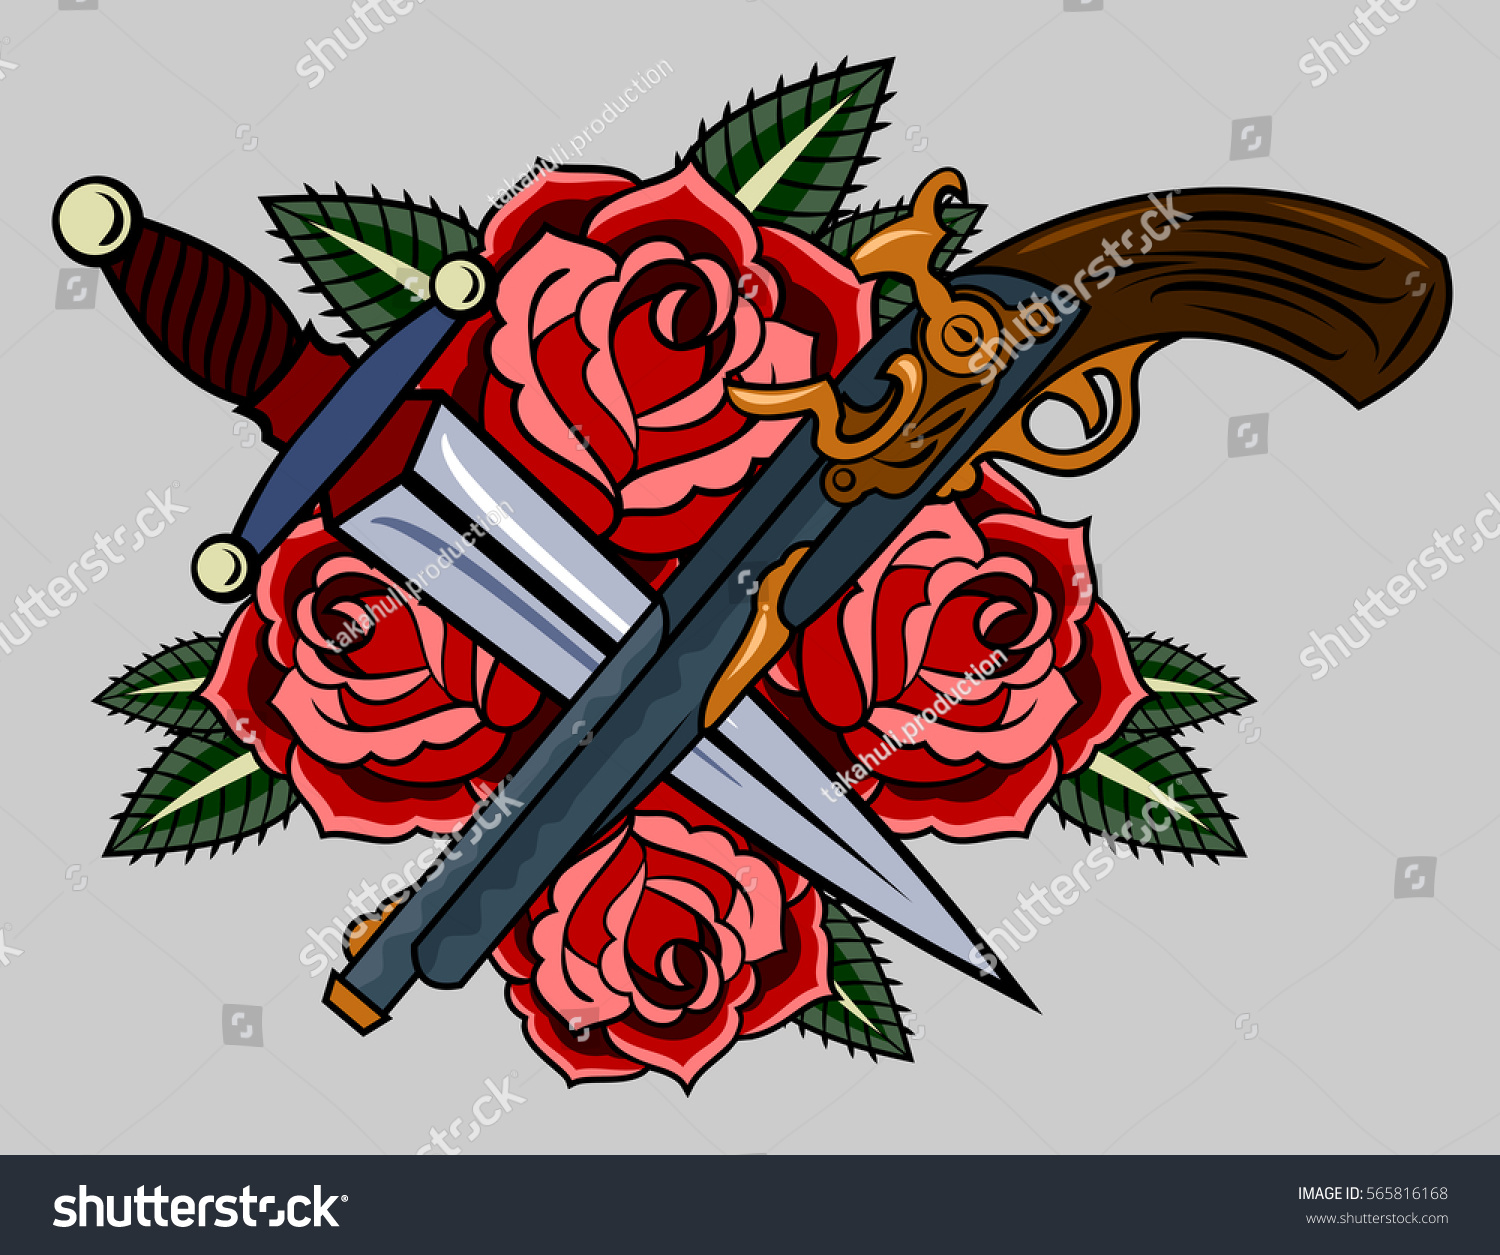 Revolvers Red Roses Old School Tattoo Stock Vector Royalty Free